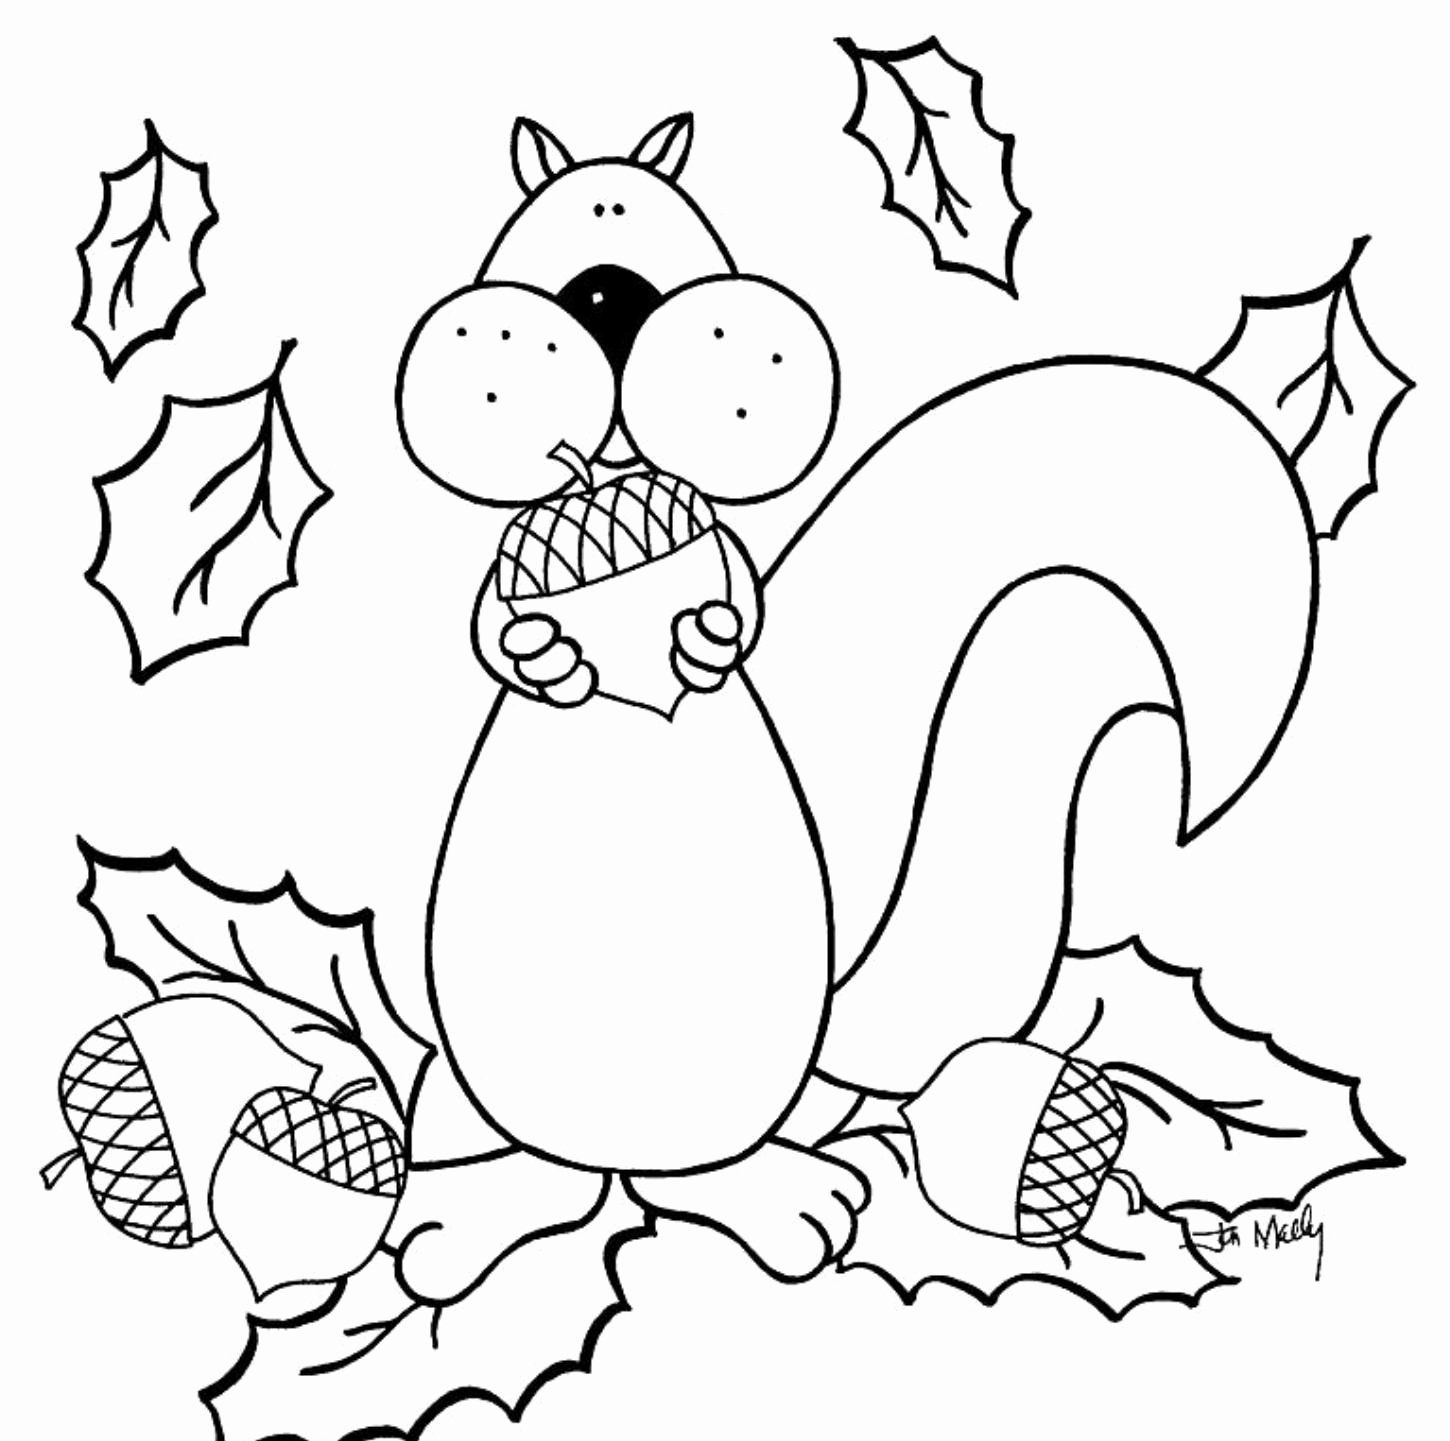 Coloring Pages Of Animals Printable Inspirational Preschool Coloring Sheets Inspirational Engaging Fall Unicorn Coloring Pages Fall Coloring Pages Animal Coloring Pages [ 1441 x 1450 Pixel ]